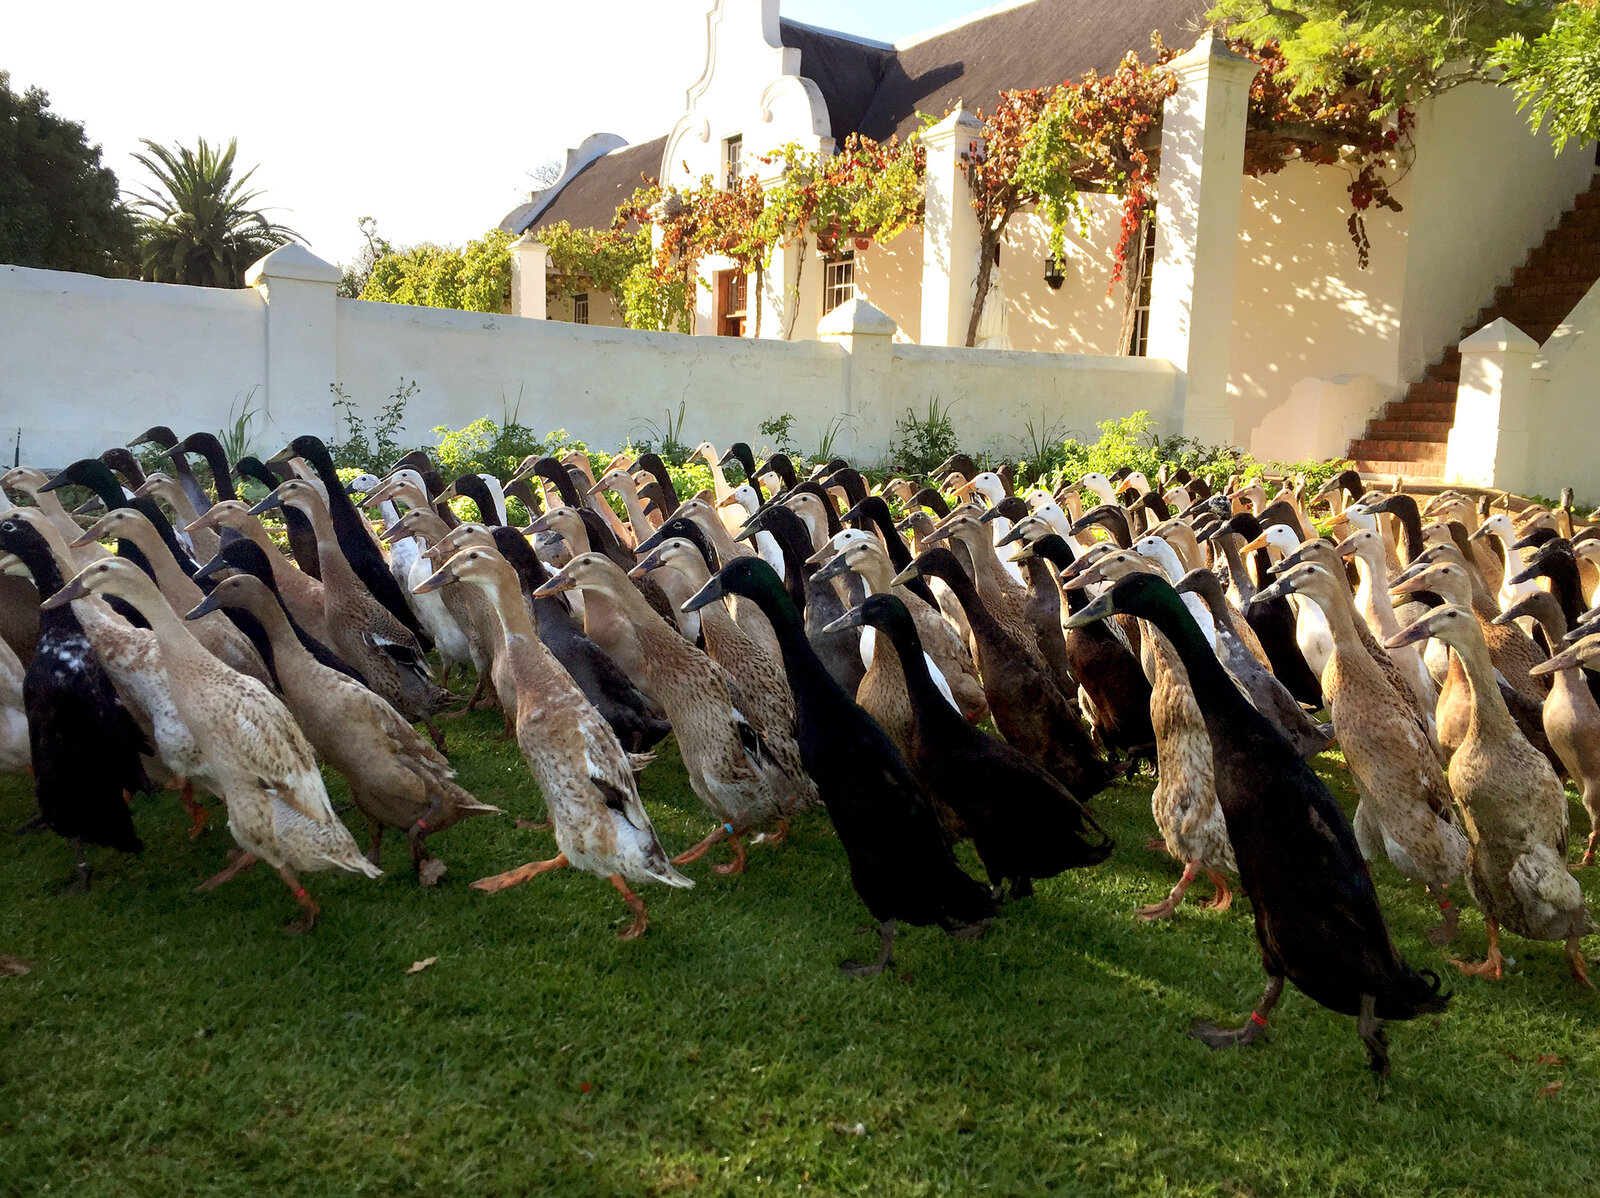 Indian runner ducks have been used in Asia for thousands of years to control pests. Now they're used in a South African vineyard to eat snails that damage the vines.